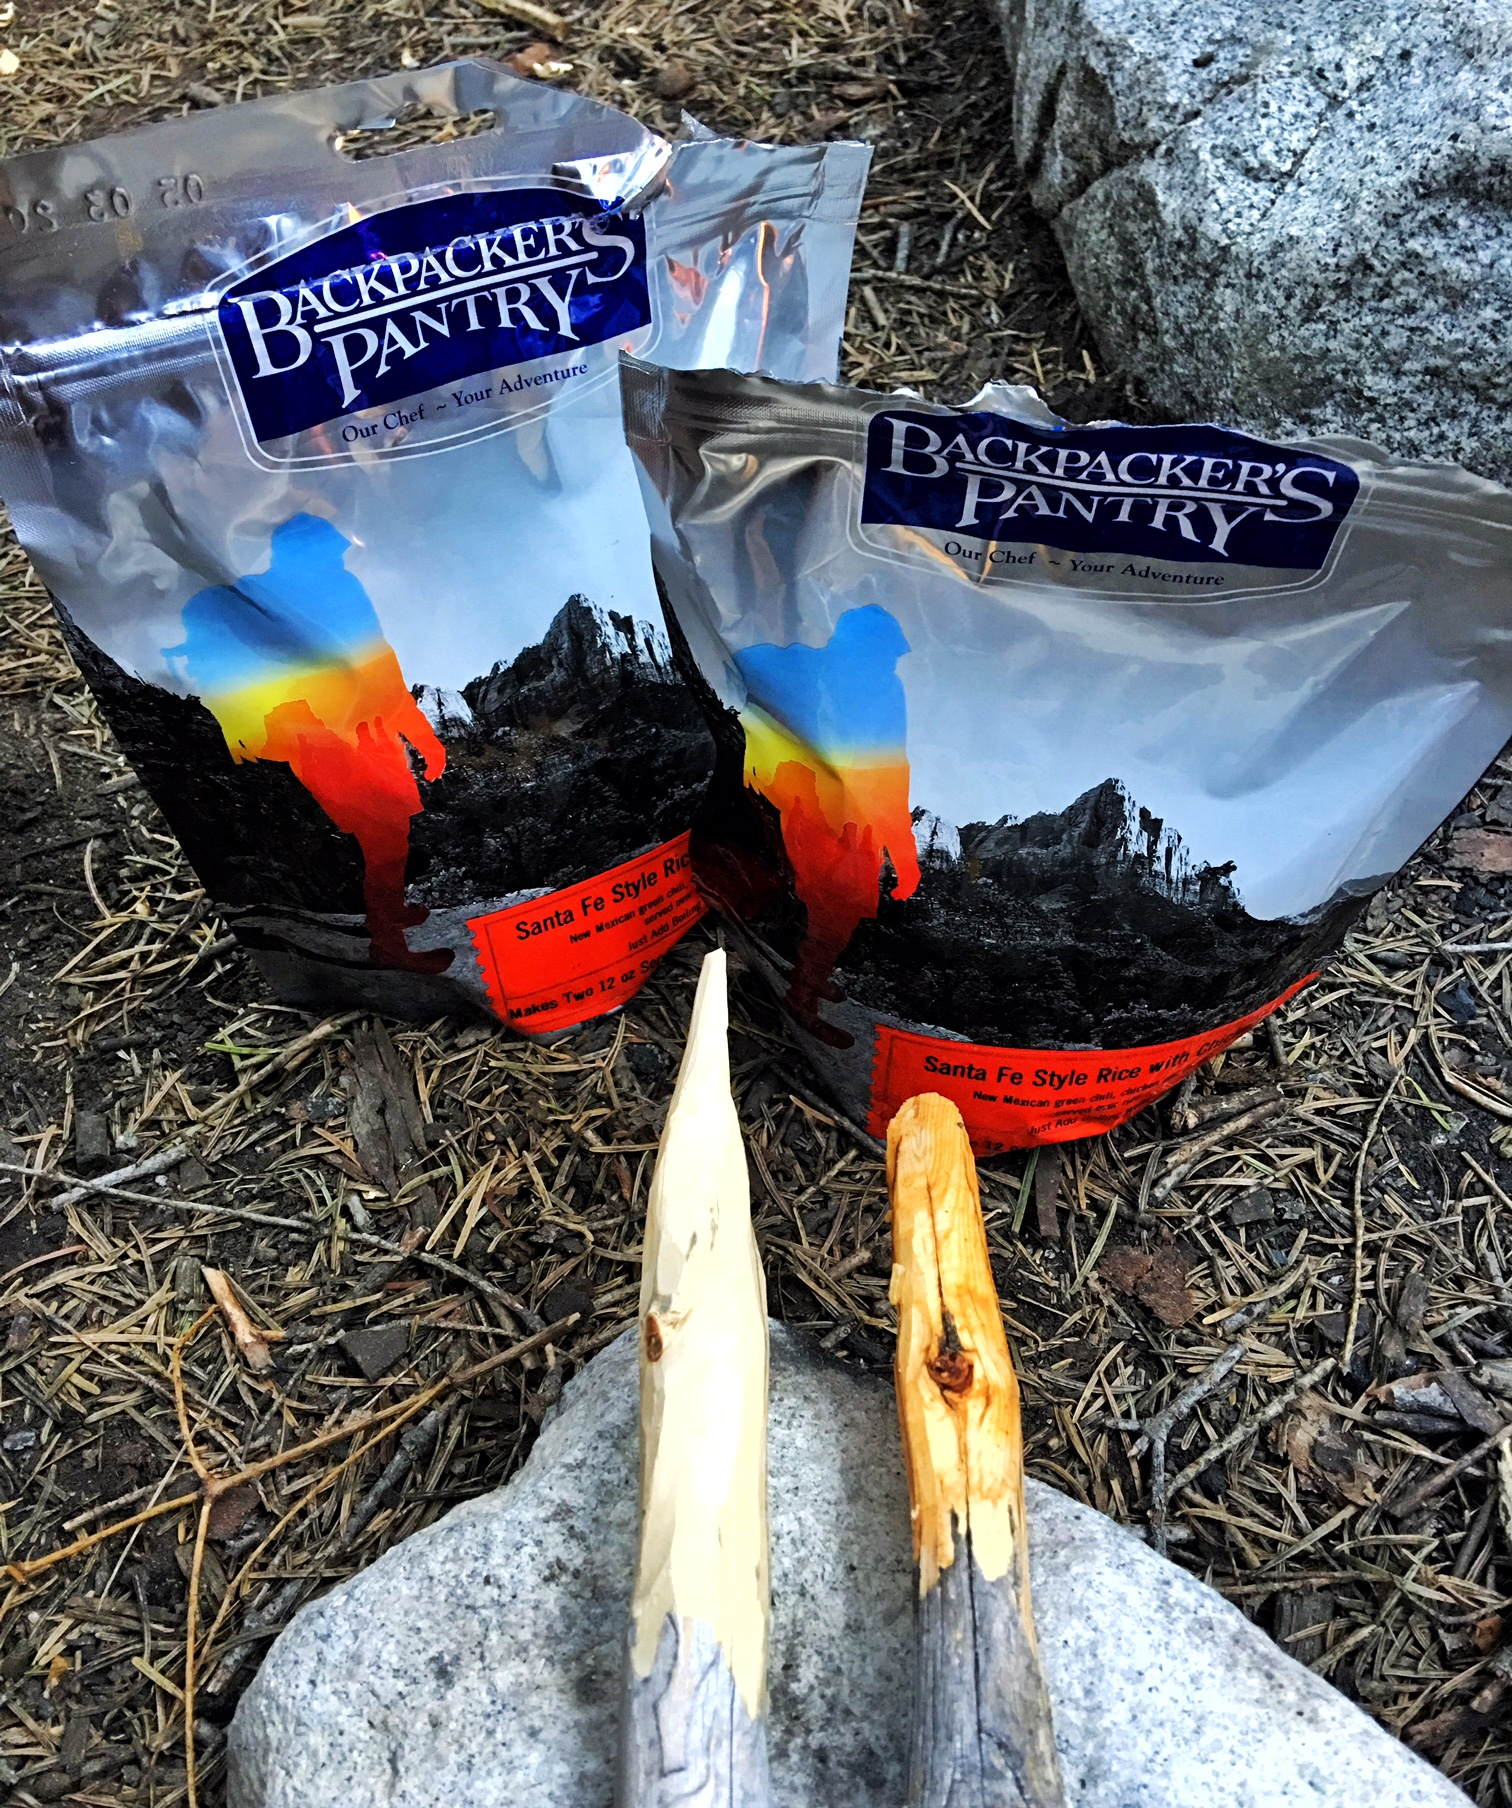 We forgot spoons so Jon made some out of sticks at Kings Canyon National Park in California. Backpackers Pantry is the best astronaut food, in our opinion.